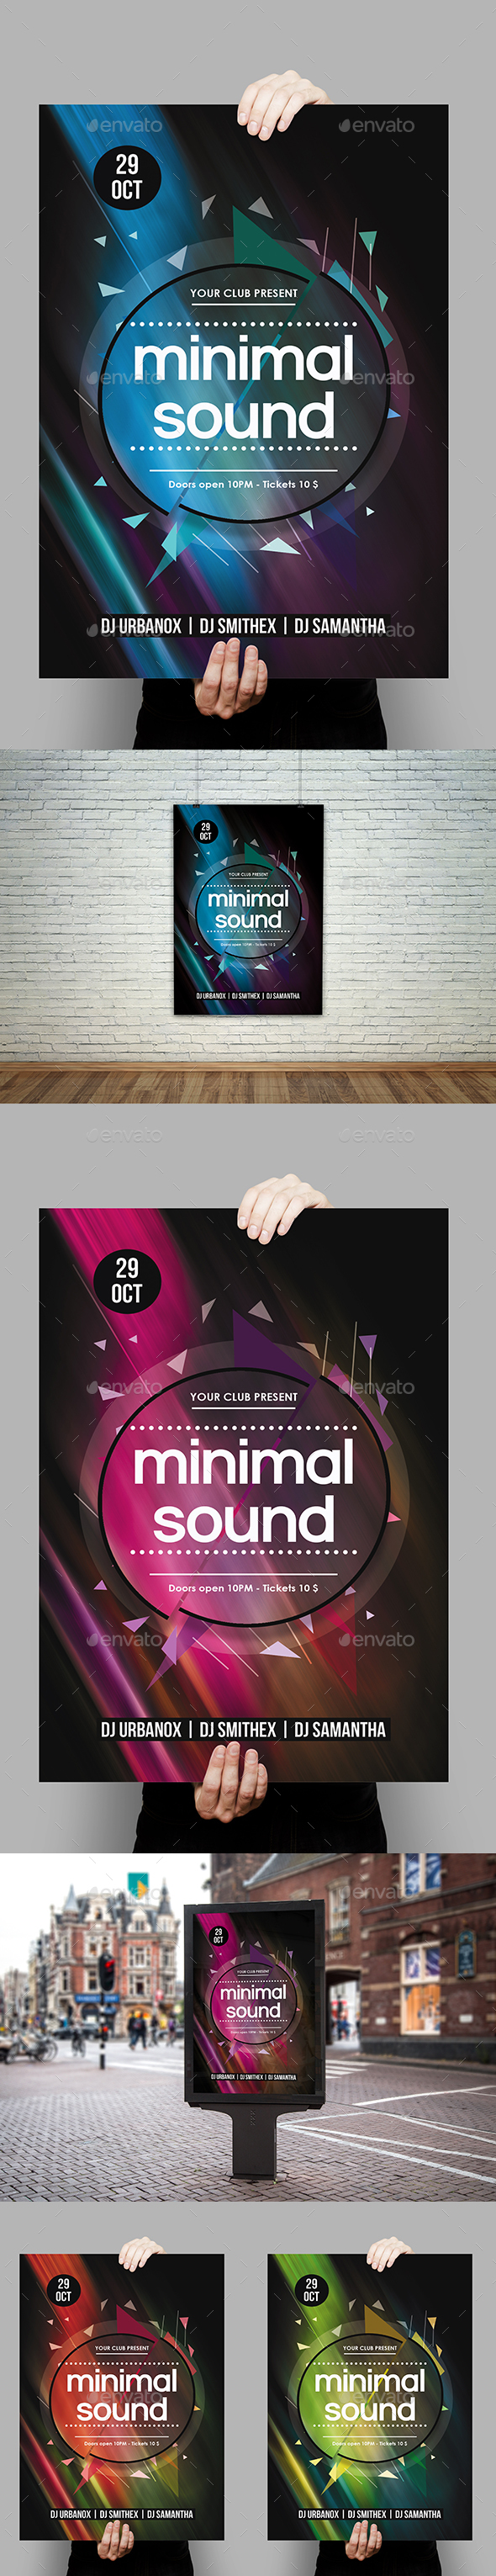 Minimal Sound Party Flyer Template - Clubs & Parties Events